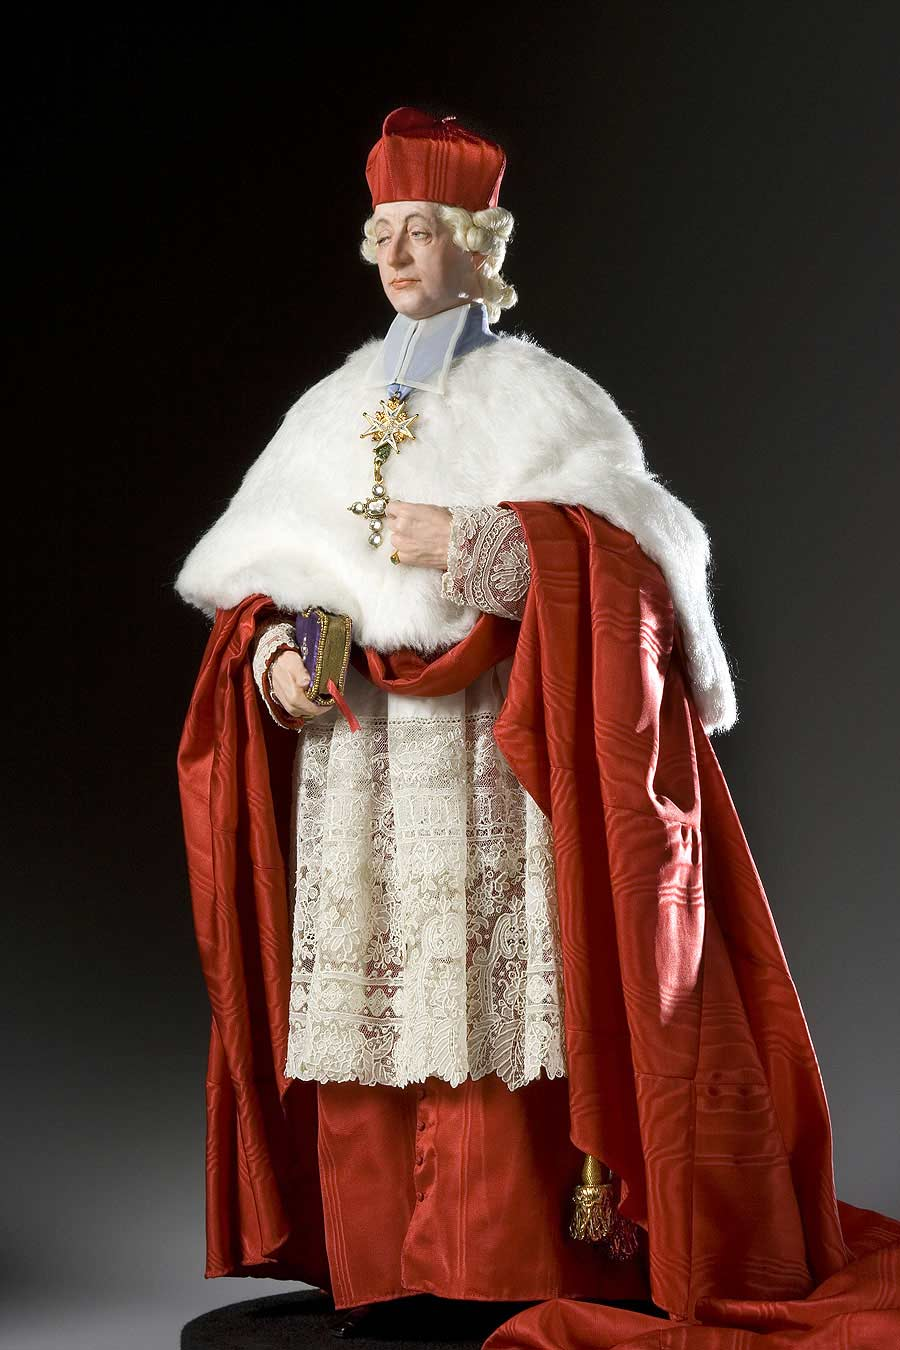 Cardinal Louis de Rohan full length view